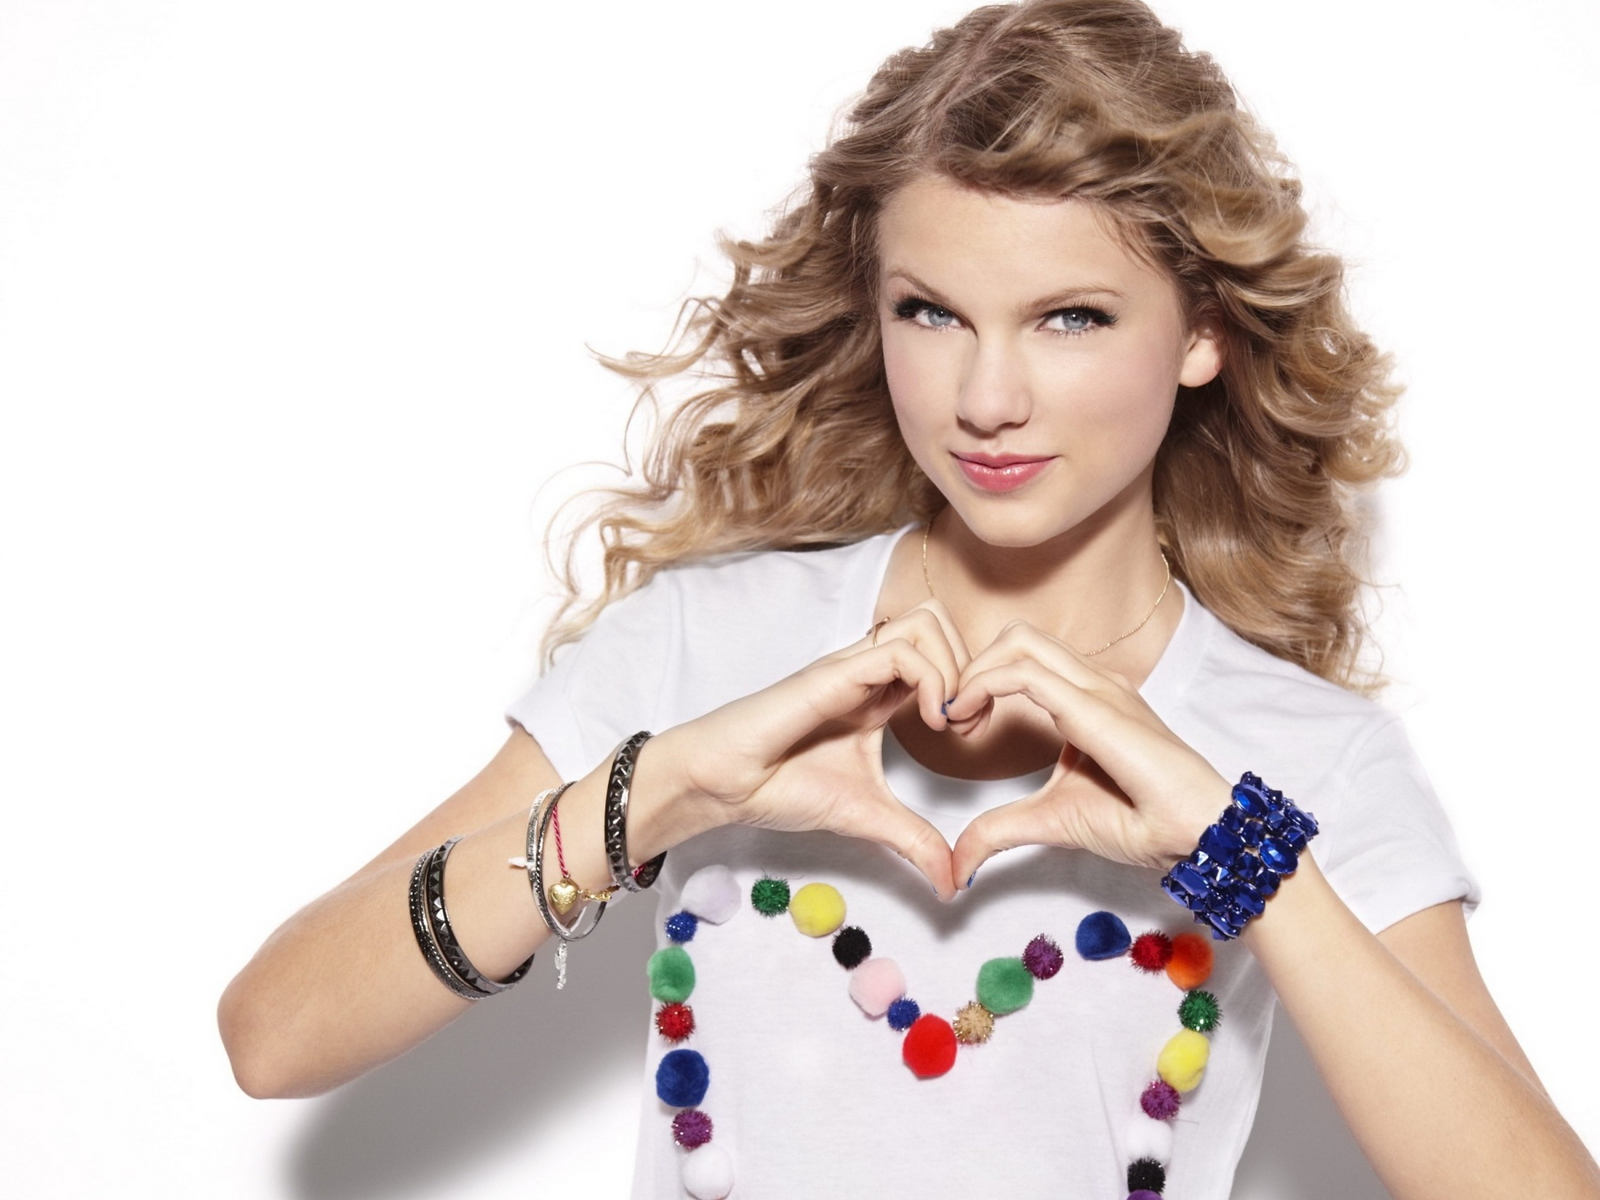 taylor swift wallpaper hd images | wallpaper.wiki